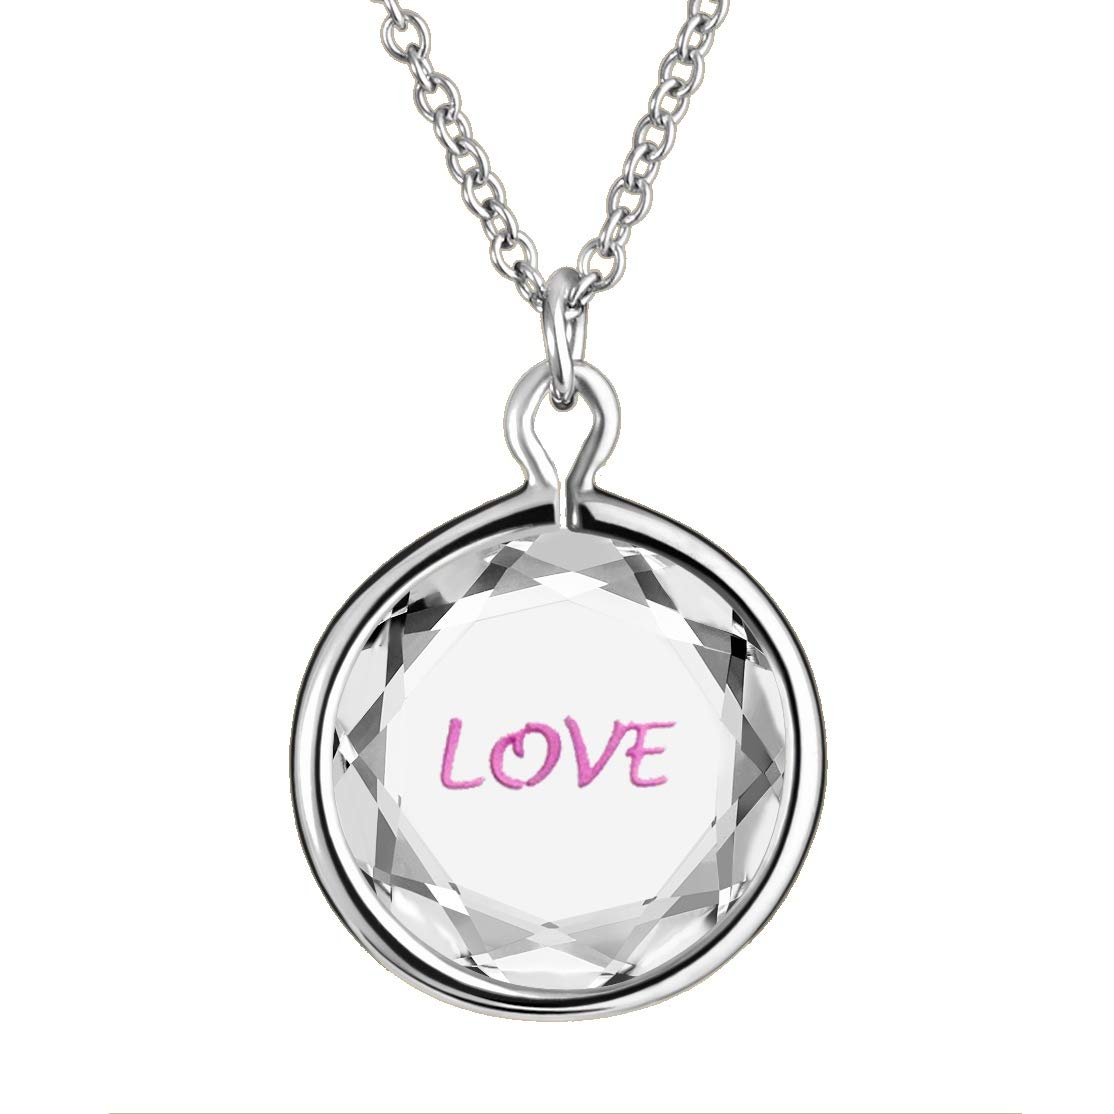 LovePendants 16-18 Necklace in White Swarovski Crystal with Gold Enameled LOVE Engraving in Yellow-Gold-Plated-Silver